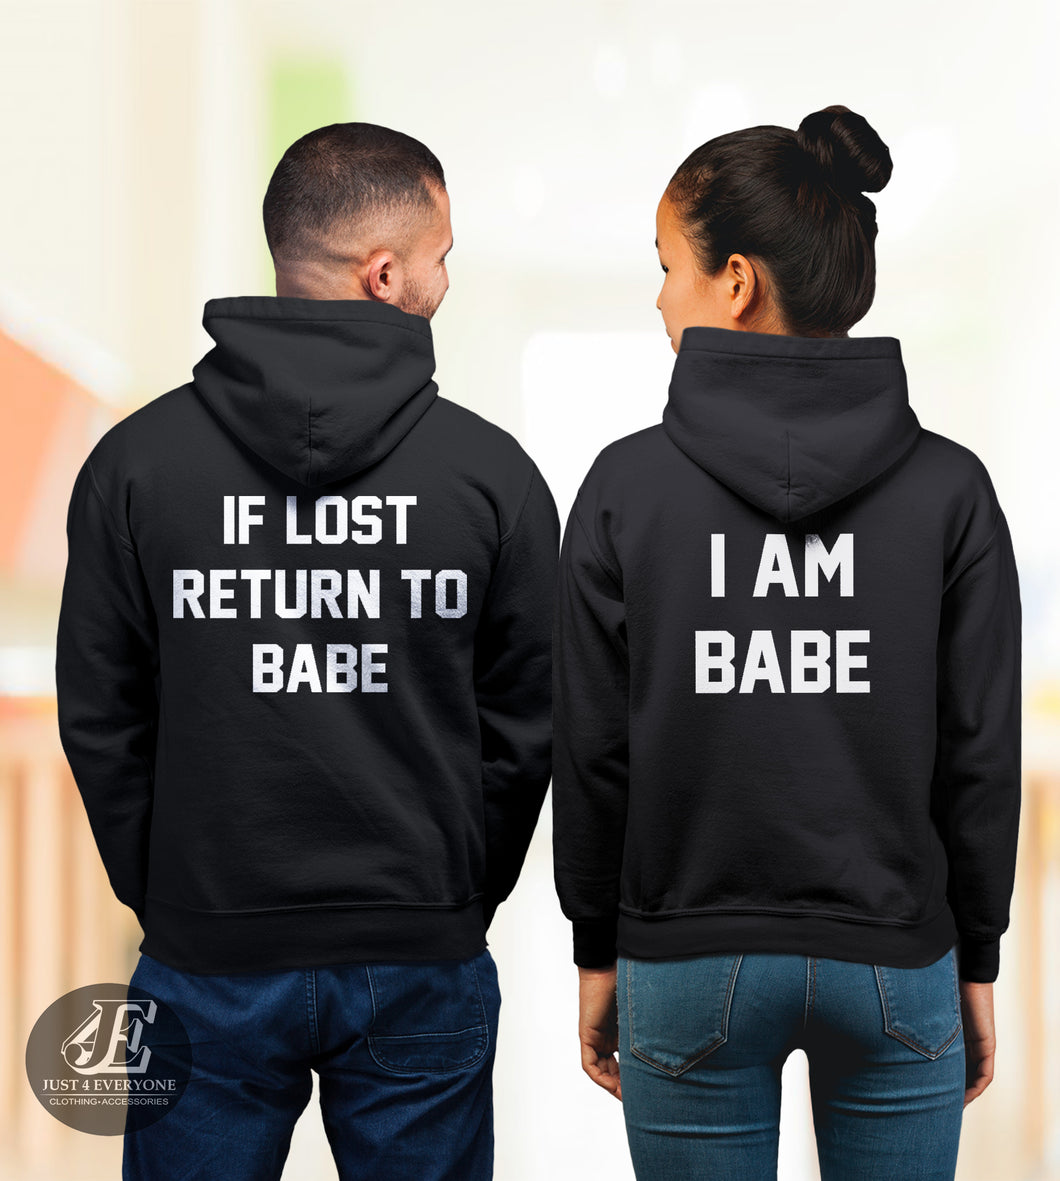 If Lost Return To Babe And I Am Babe, Couples Hoodie Set, Matching Sweaters, Pärchen Pullover, Couple Sweatshirts, Couples Hoodies, Unisex